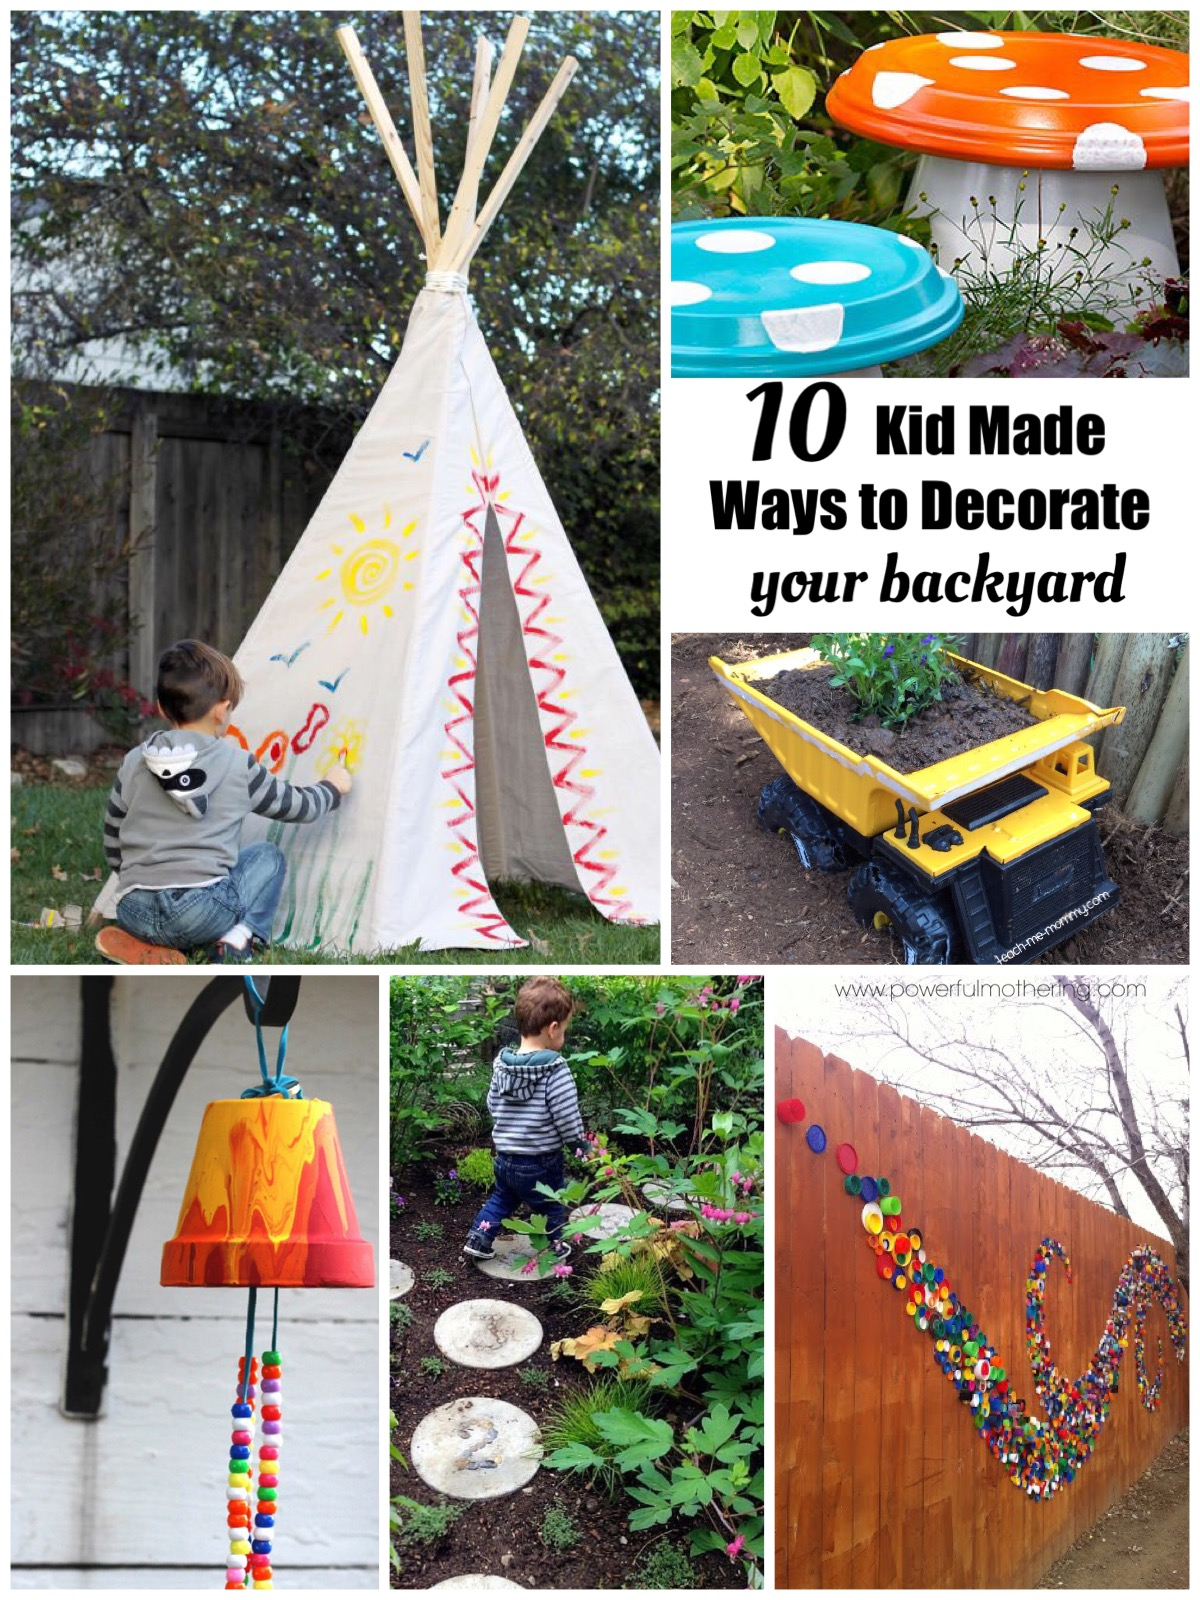 Top 10 Kid Made Ways to Decorate your Backyard